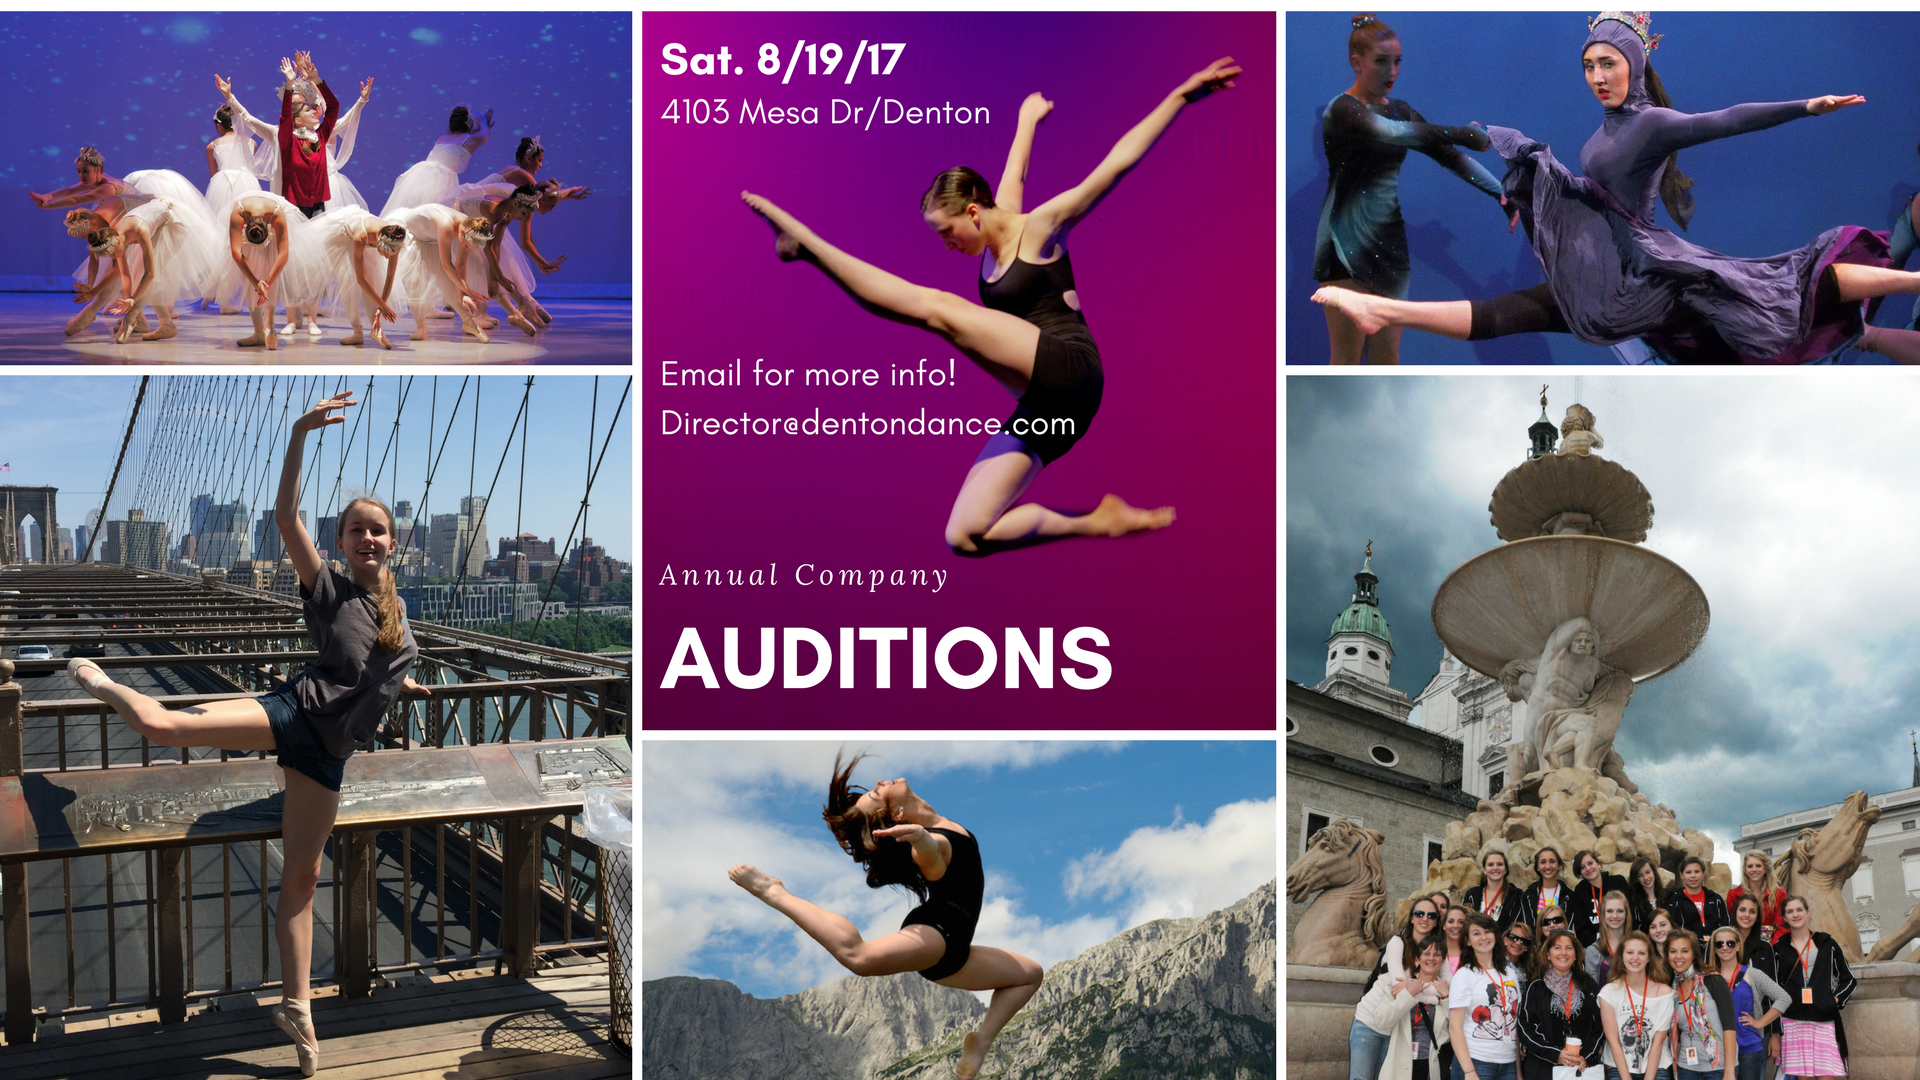 FB Event Cover Auditions 2017